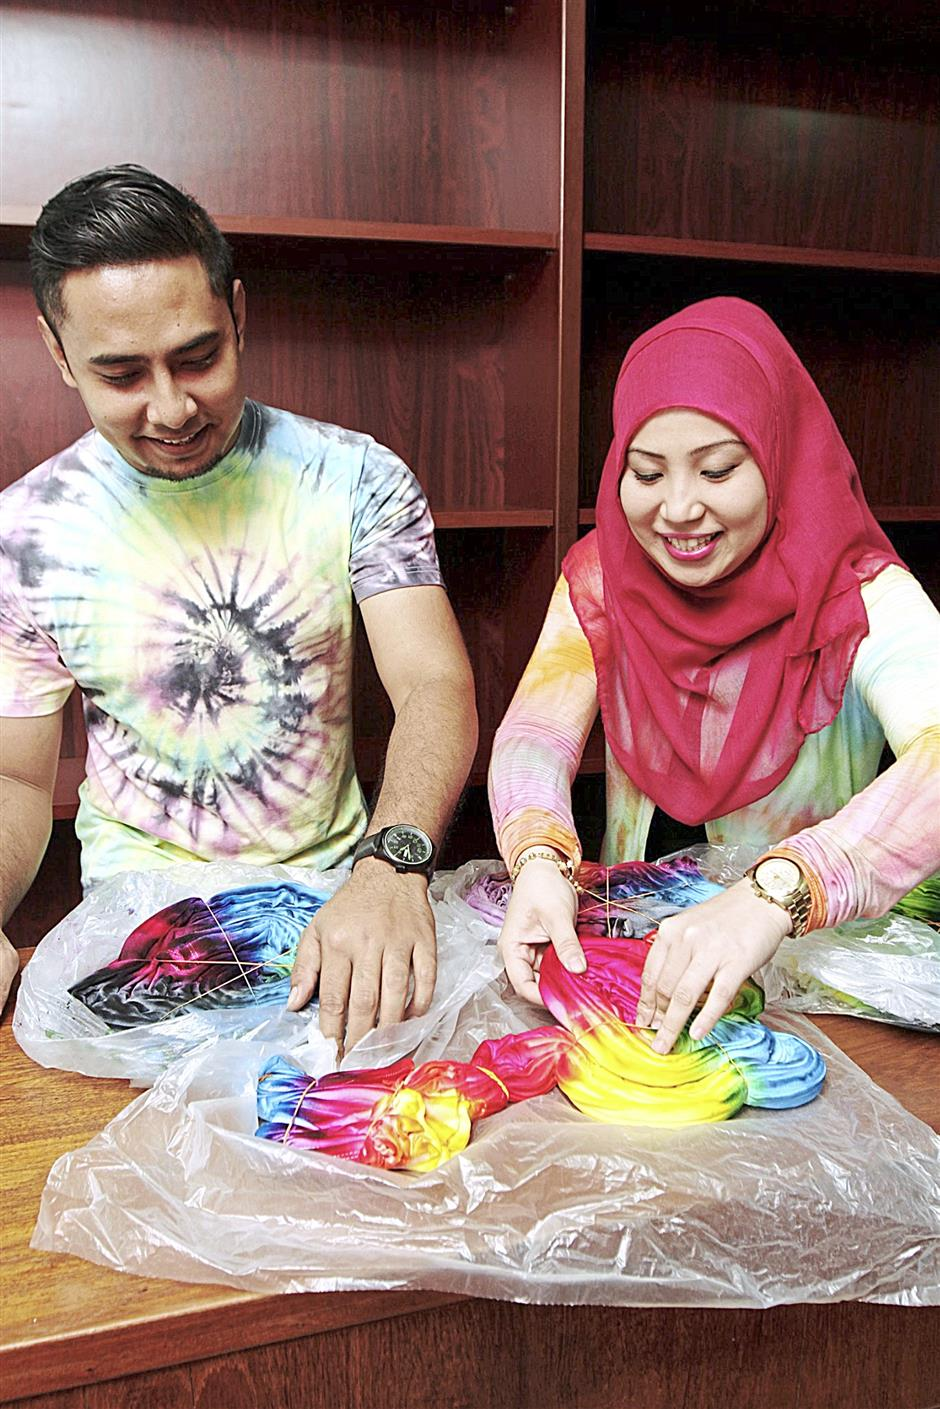 Abdul Hafiz and Khairunnisa demonstrating how the tie-dye process is done.